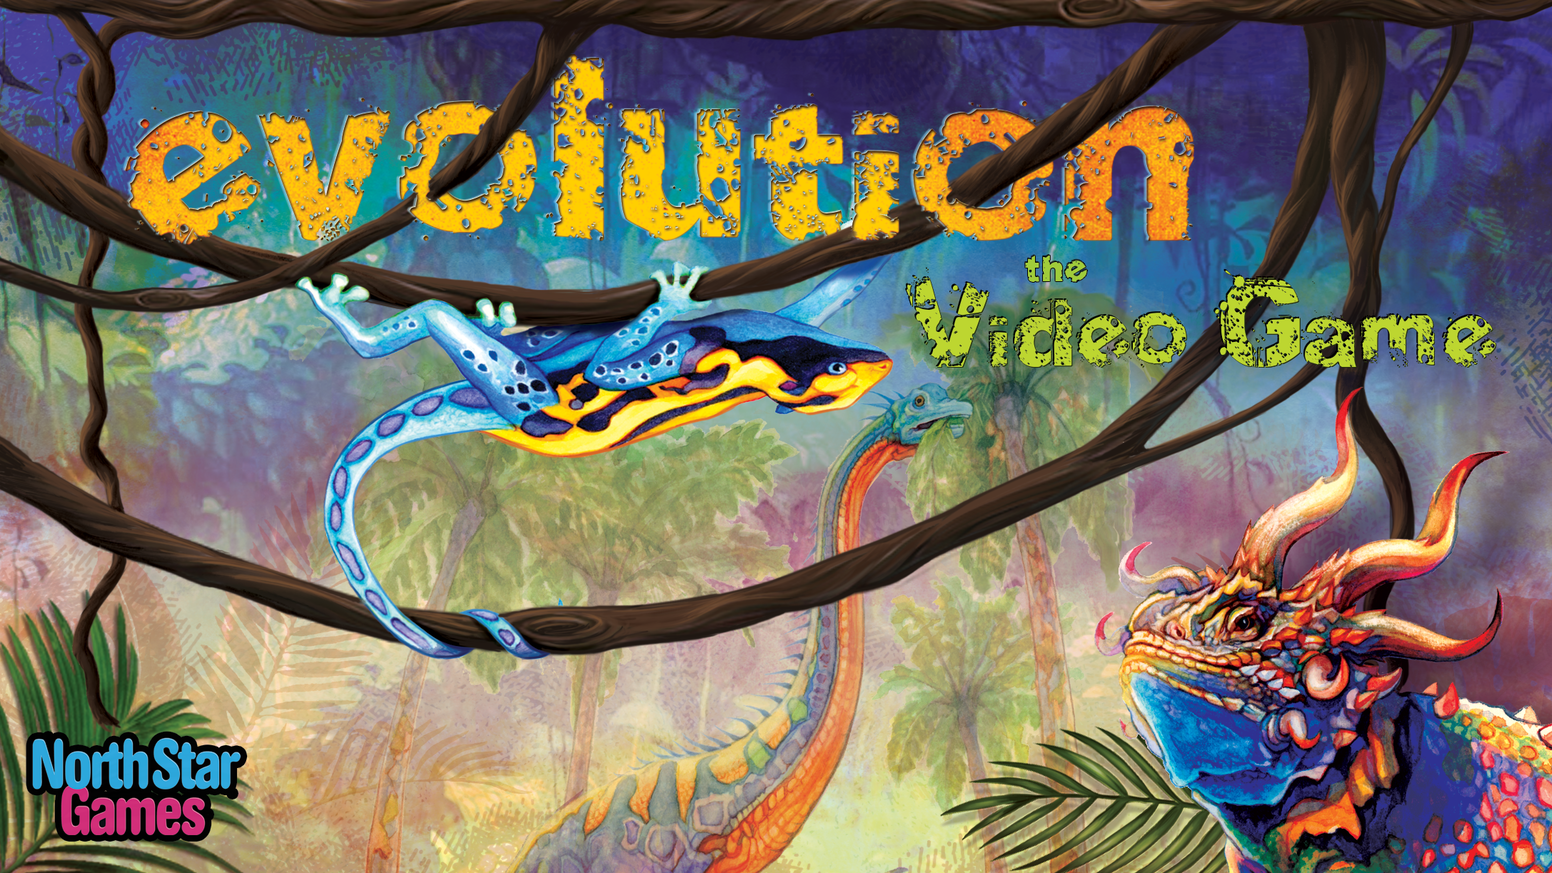 Evolution: The Video Game hack mod apk with cheat codes generator